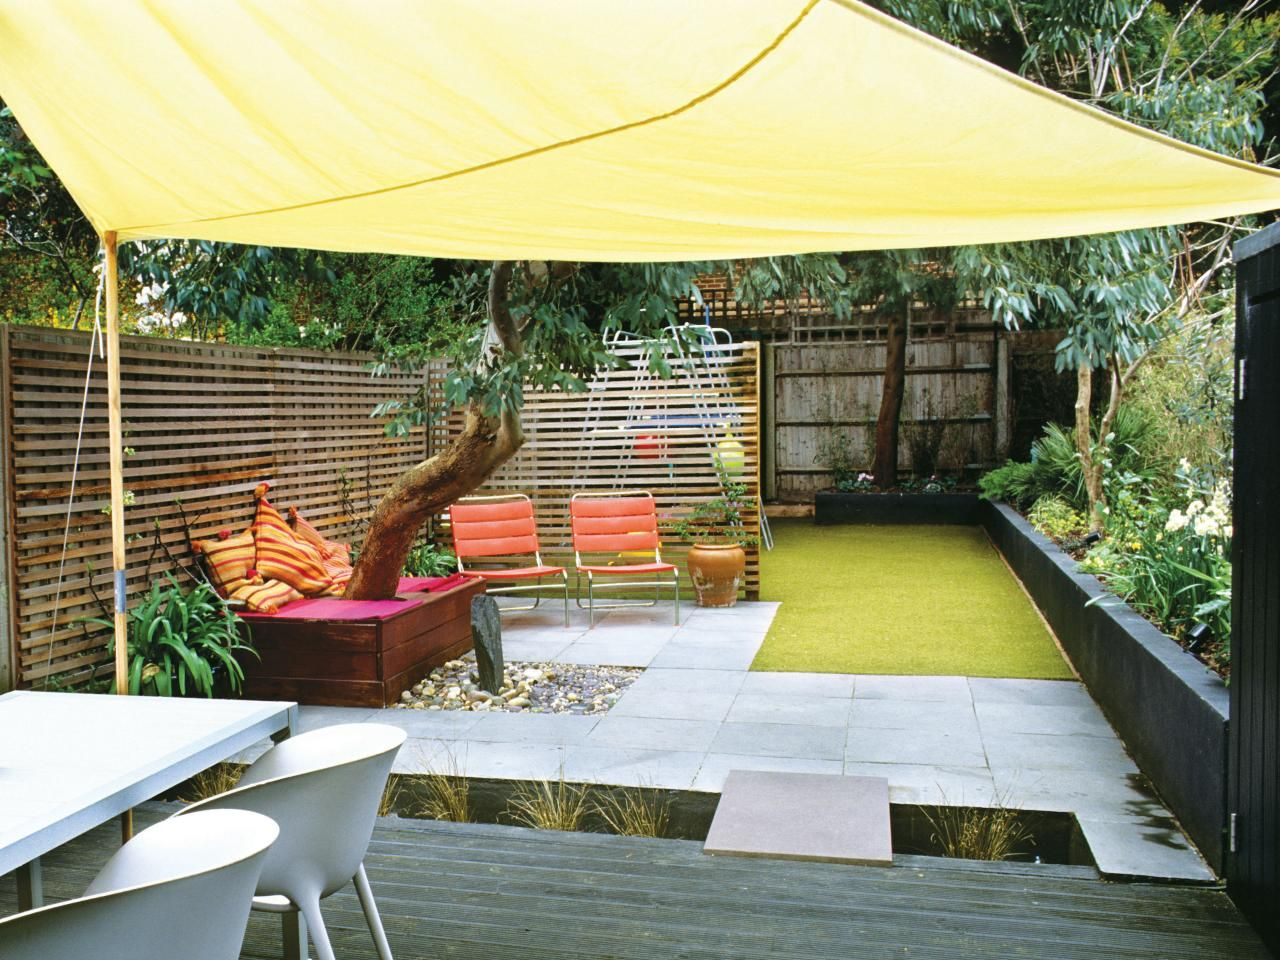 Options For An Affordable Outdoor Kitchen Backyard Shade Backyard Ideas For Small Yards Budget Patio